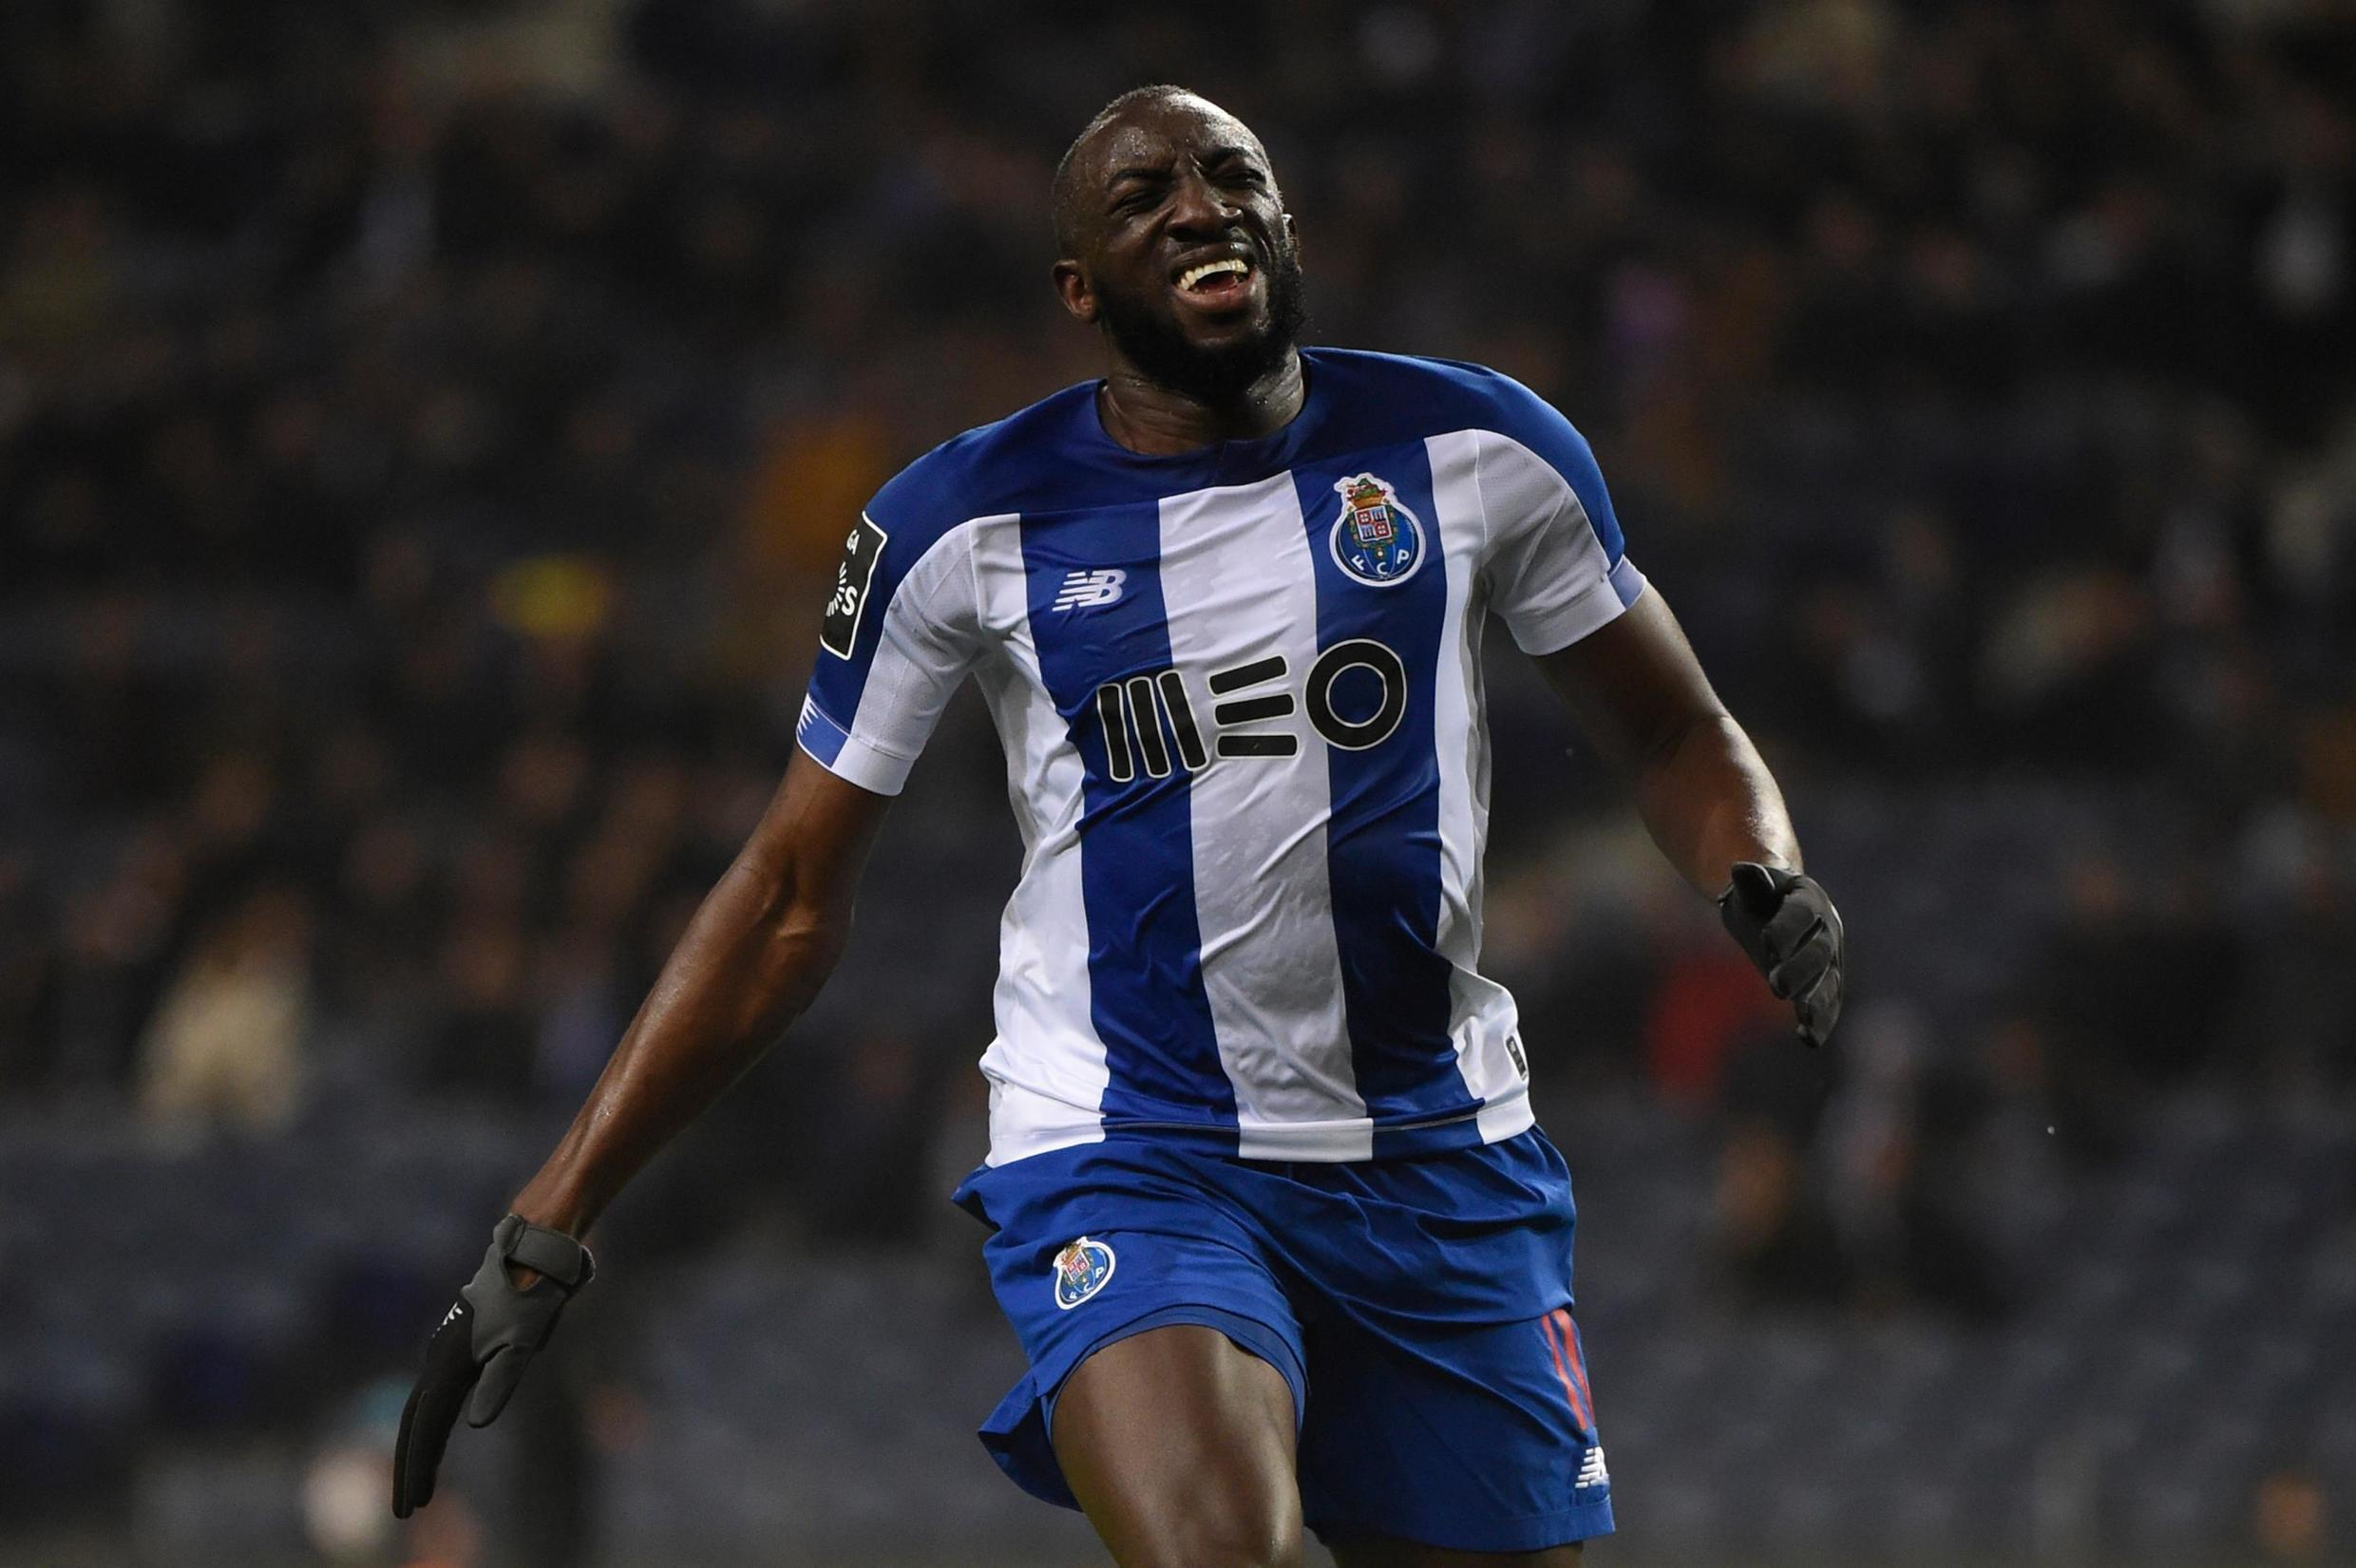 Moussa Margea scored Porto's opener in their 3-0 win over Marseille in the Champions League.